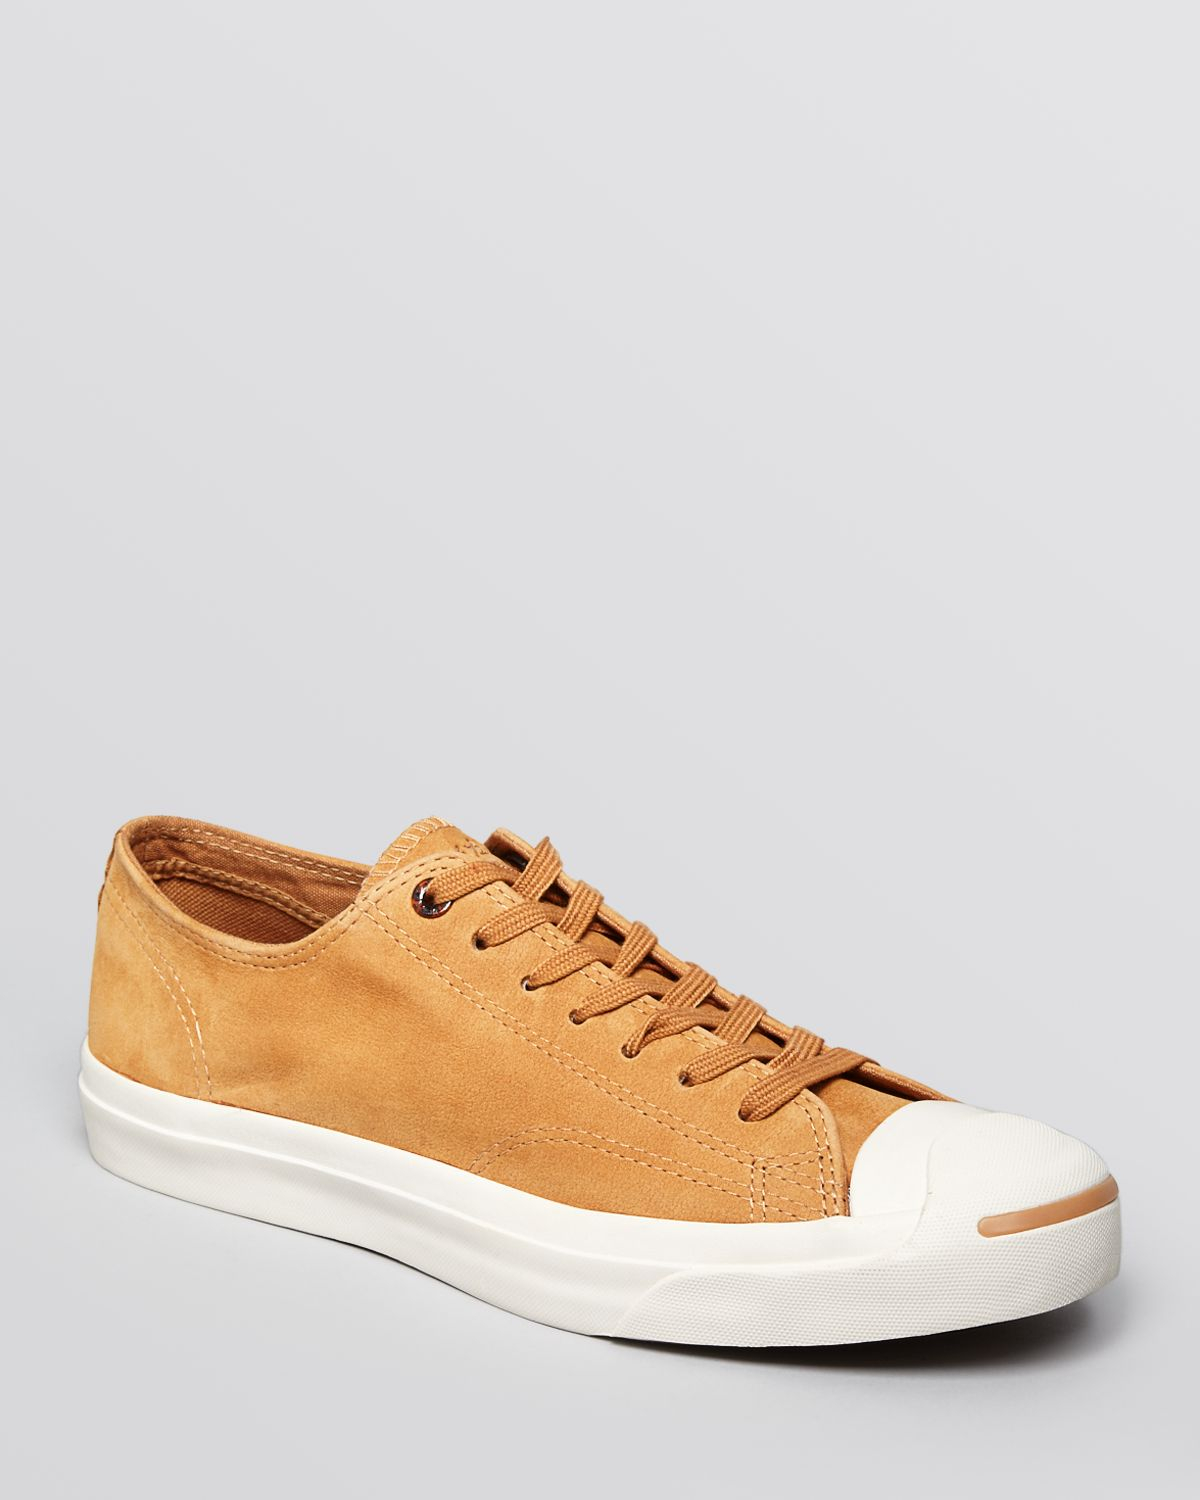 01fa2fbf73c8 Lyst - Converse Jack Purcell Suede Sneakers in Brown for Men